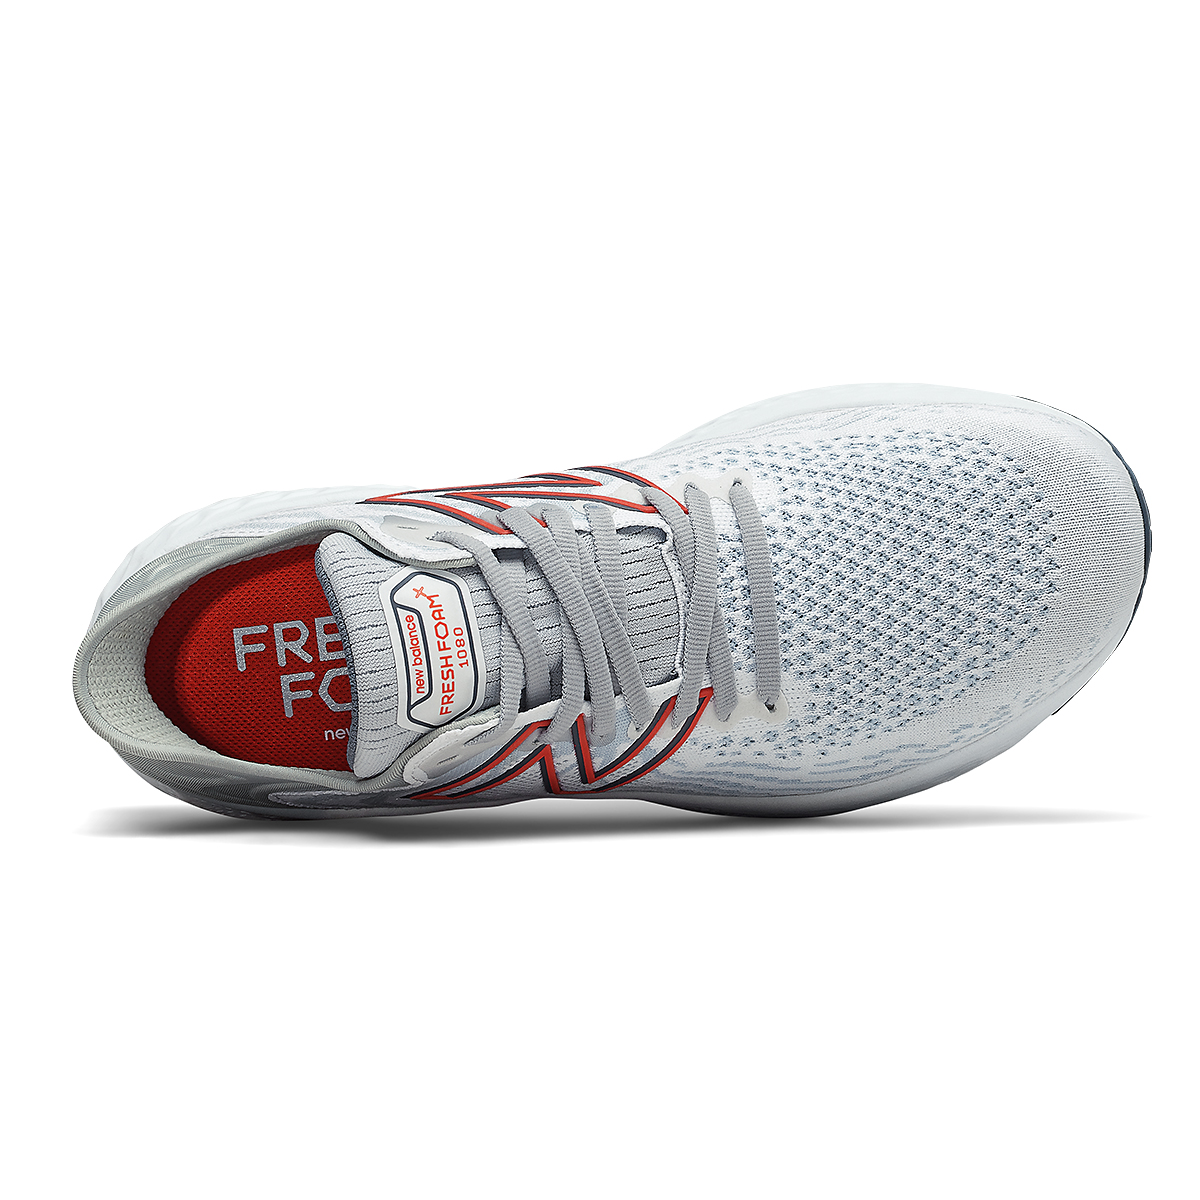 Men's New Balance 1080v11 Running Shoe - Color: White/Ghost Pepper - Size: 7 - Width: Wide, White/Ghost Pepper, large, image 4